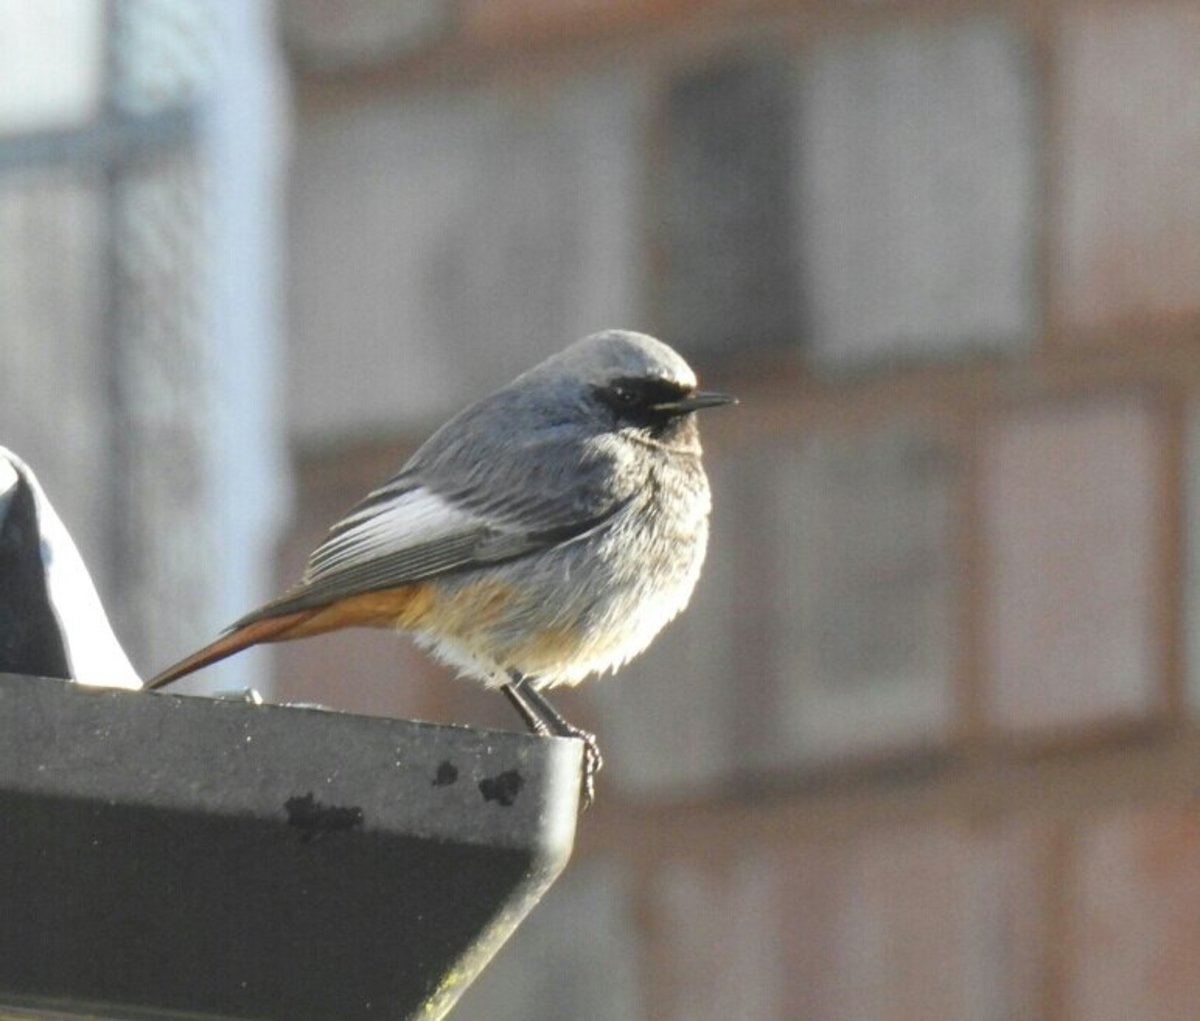 Birding Trip Report: Black Redstart at Stirchley, West Midlands Wednesday 30th January 2019